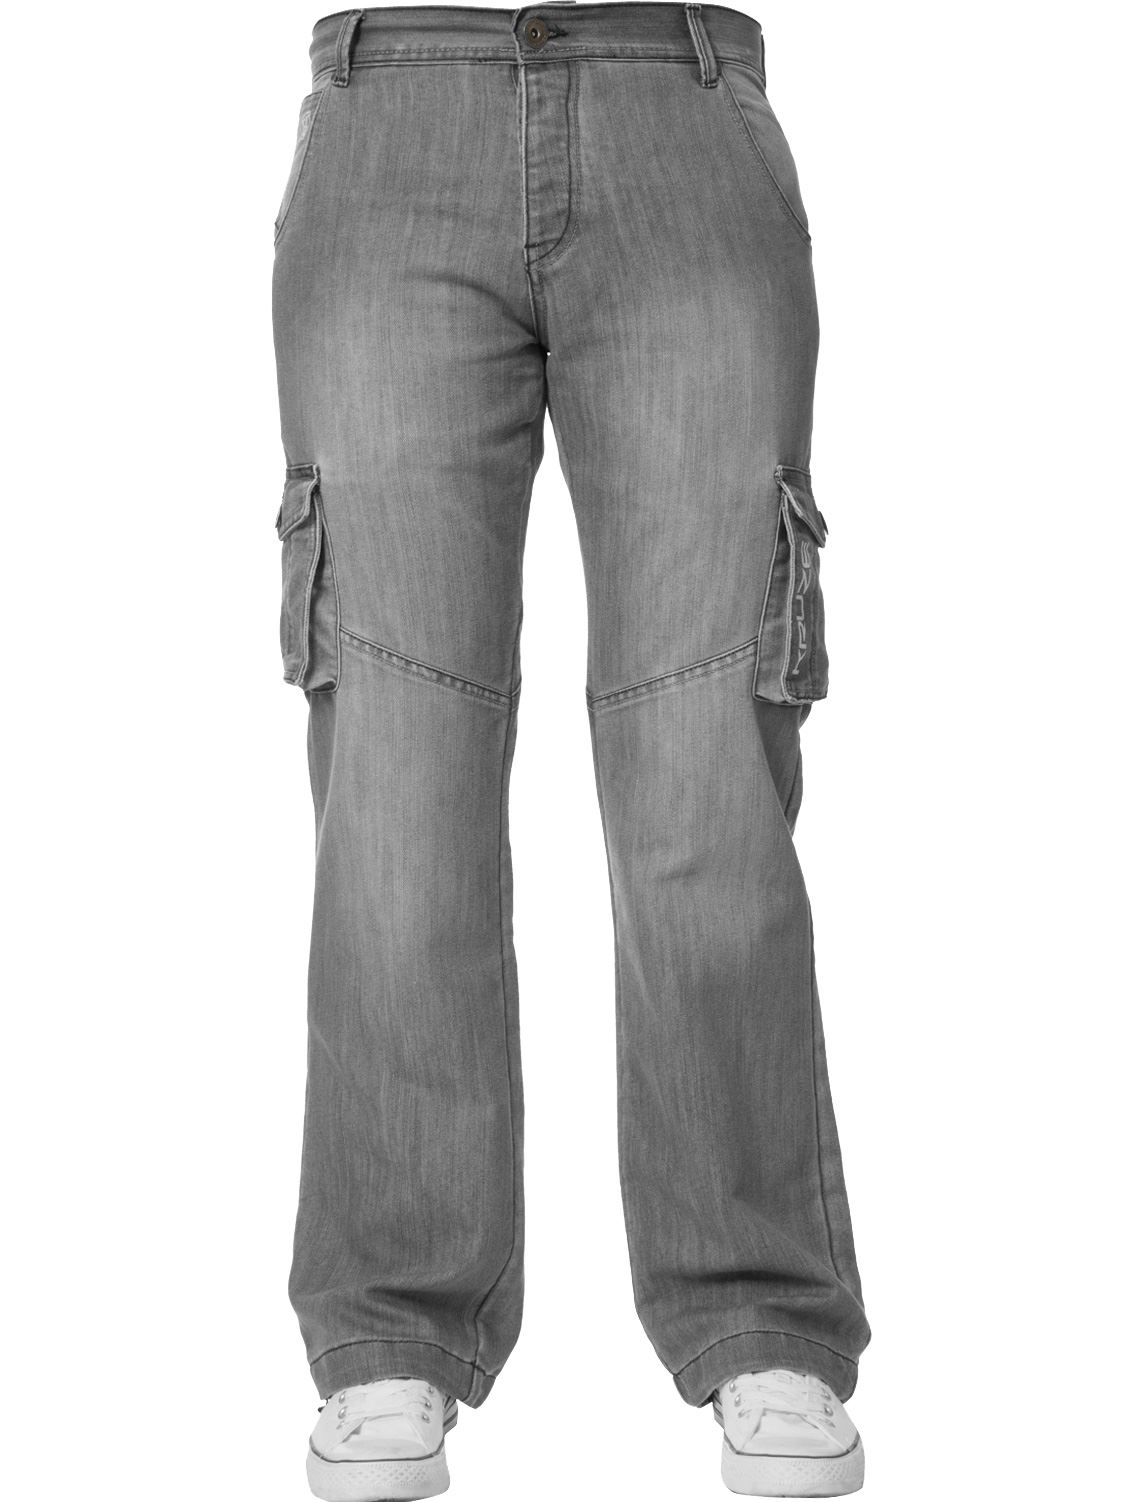 Kruze-Mens-Cargo-Combat-Jeans-Casual-Work-Denim-Pants-Big-Tall-All-Waist-Sizes thumbnail 31